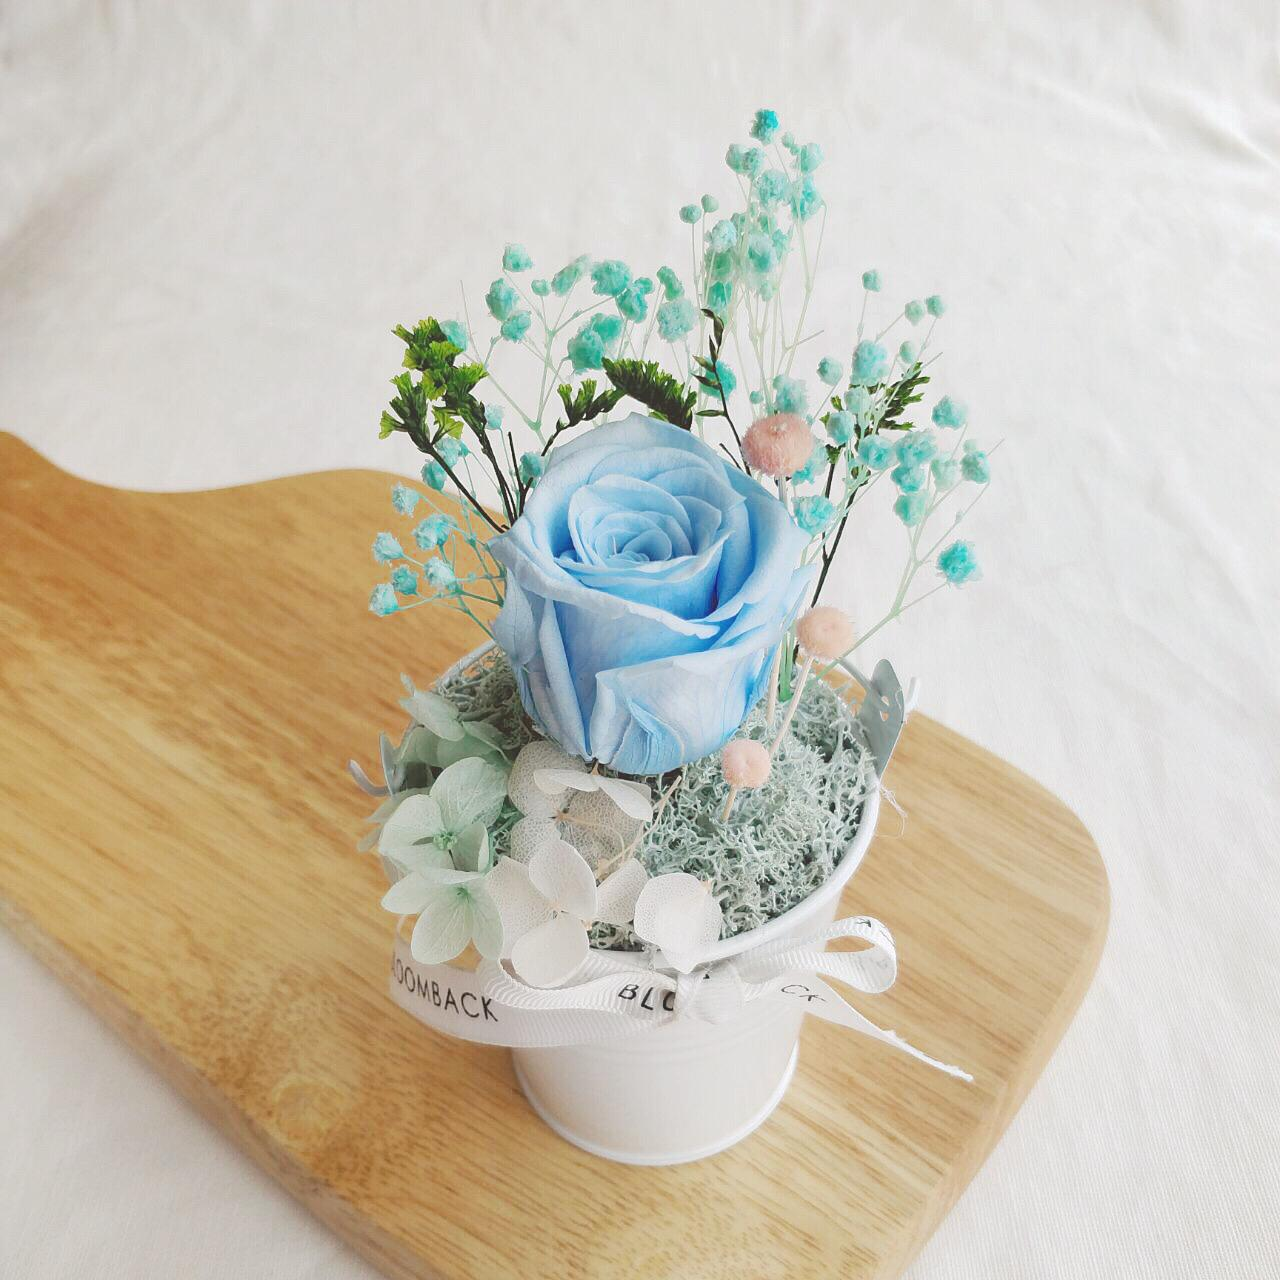 A small white bucket featuring 1 blue preserved rose, preserved foliages, preserved hydrangeas and BloomBack ribbon.